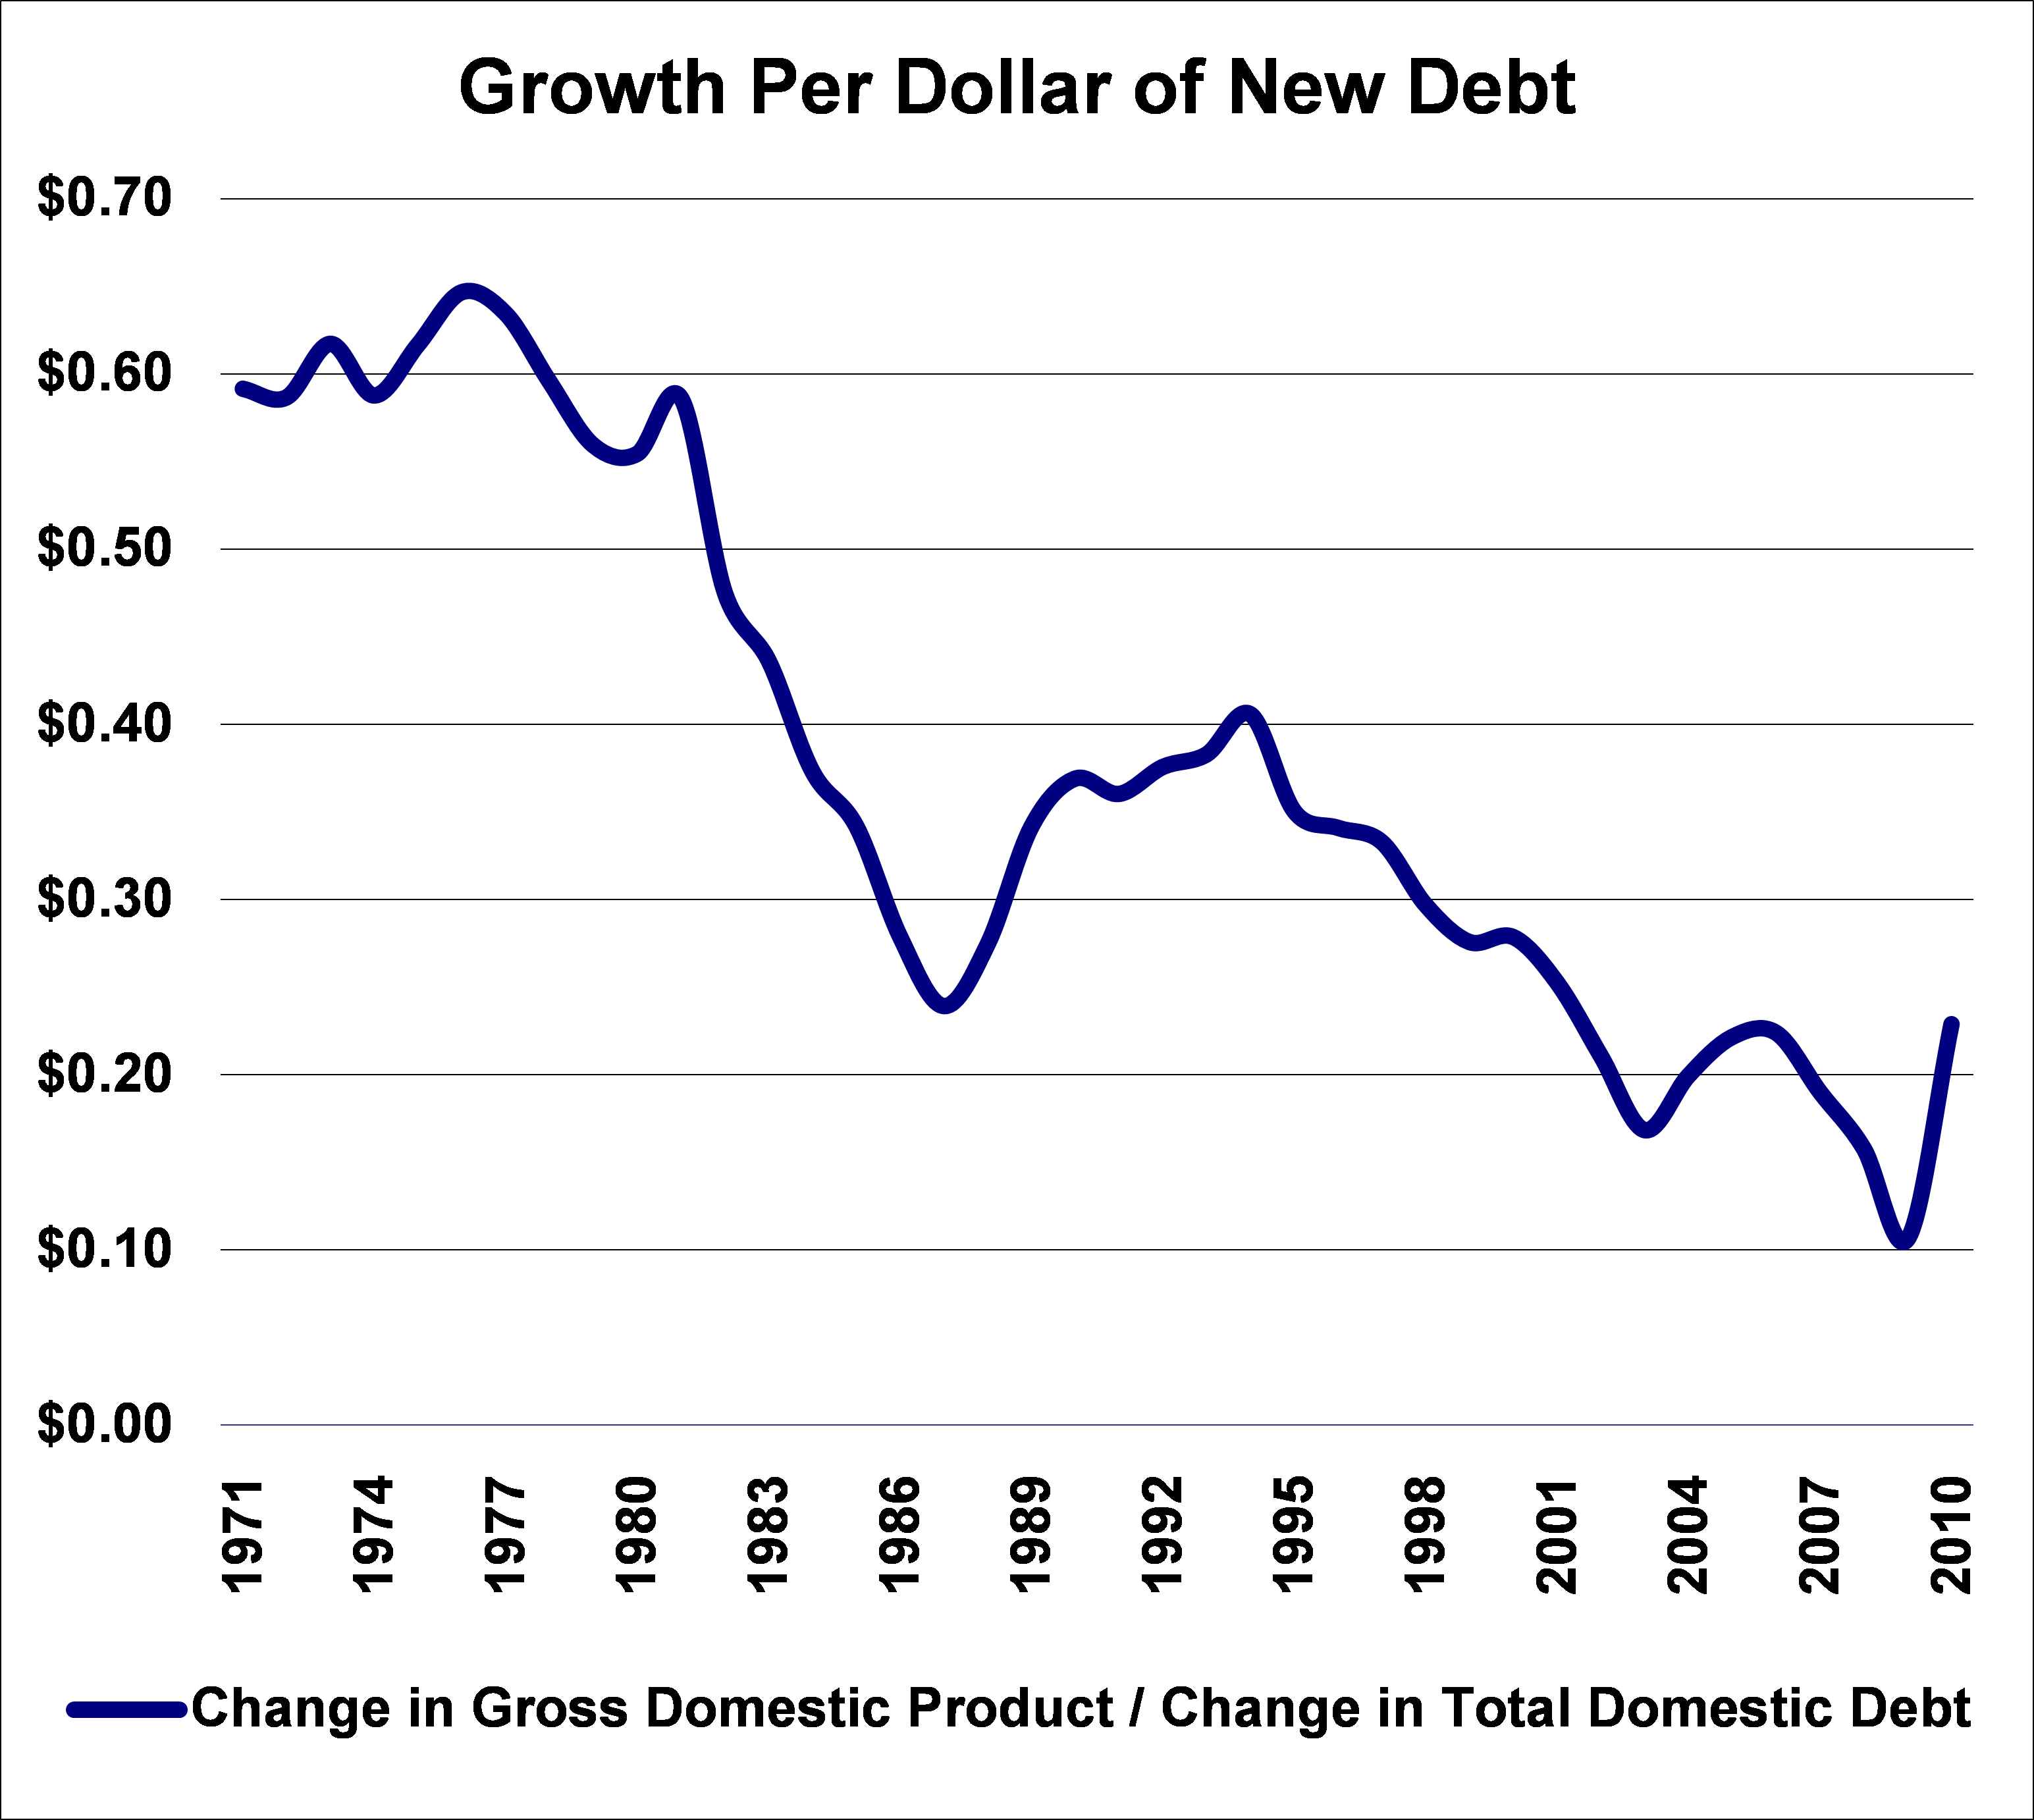 growth_per_dollar_of_new_debt_2010